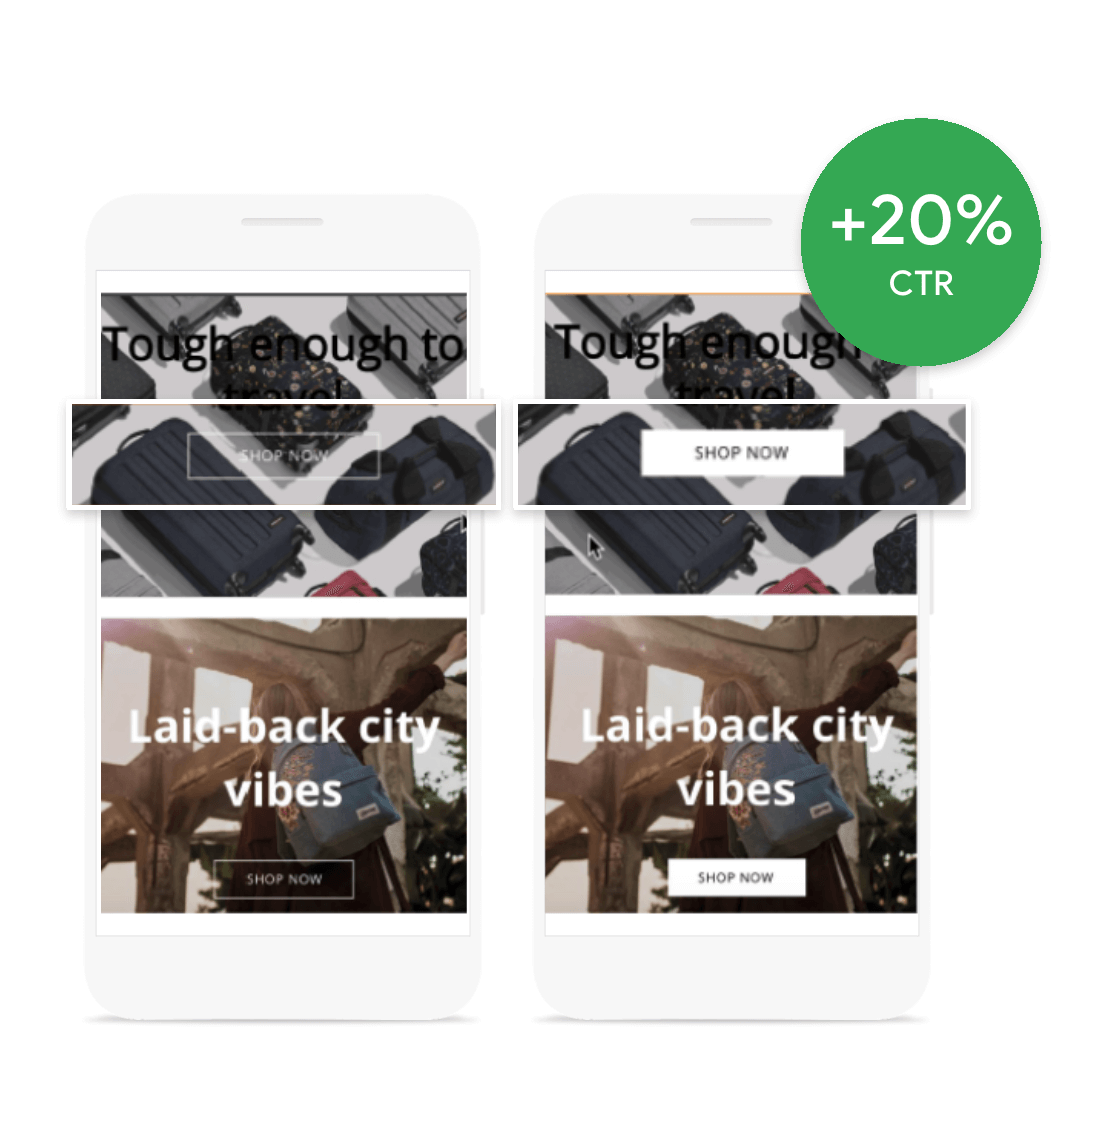 Eastpak improving the color contrast of their main call to action lead to a 20% increase in click through rate.(Source: Google)